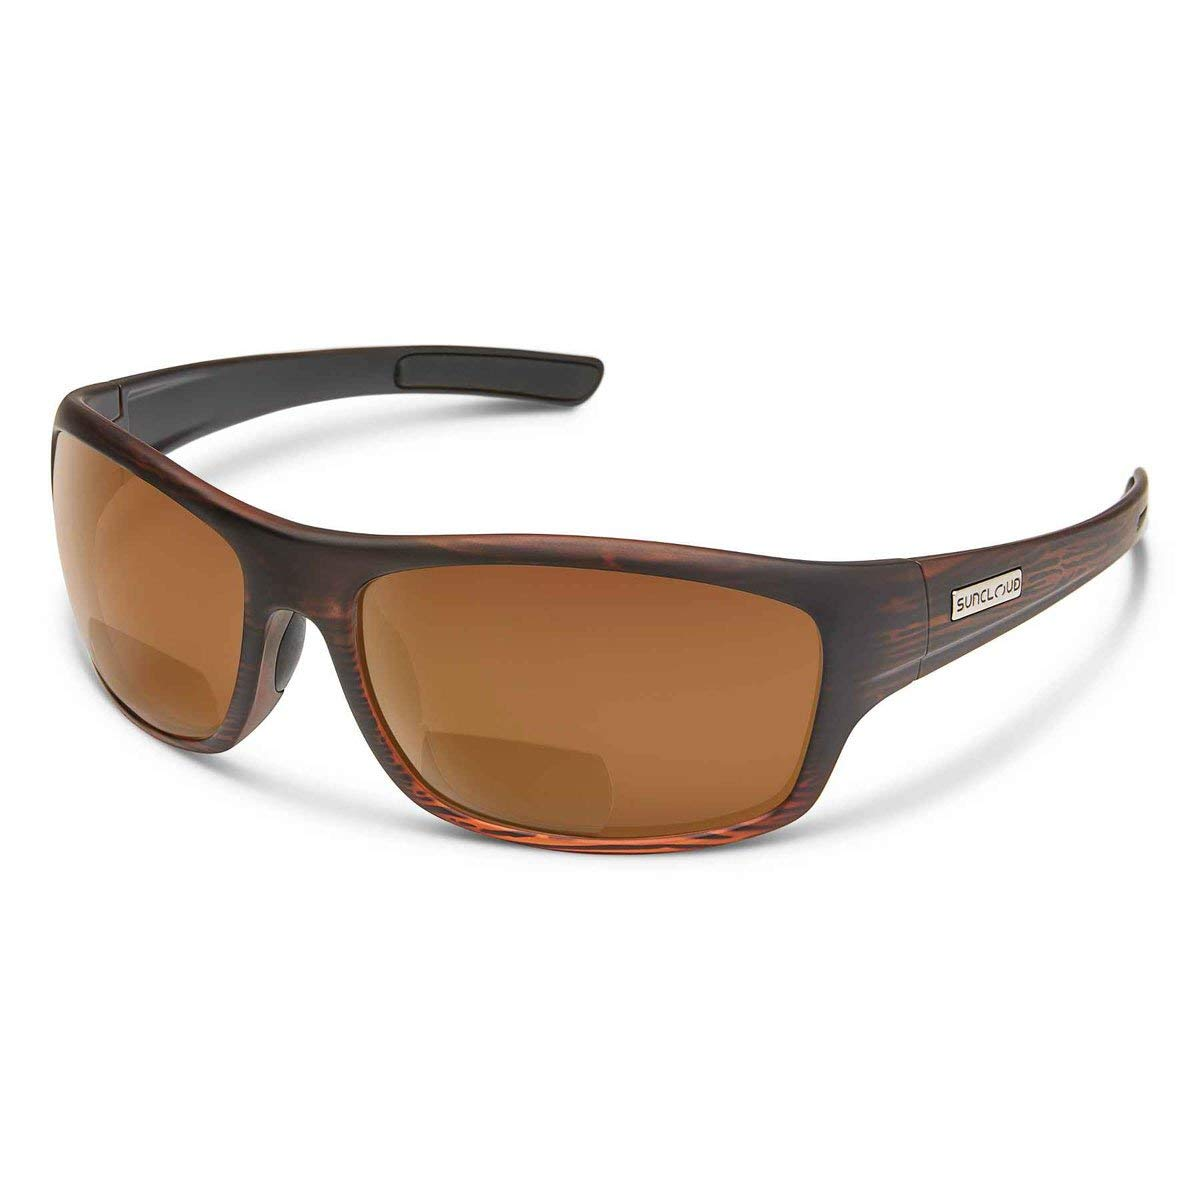 826d3d442d8 Get Quotations · Suncloud Optics Cover Readers Polarized Medium Fit  Sunglasses 2.0 (Burnished Brown